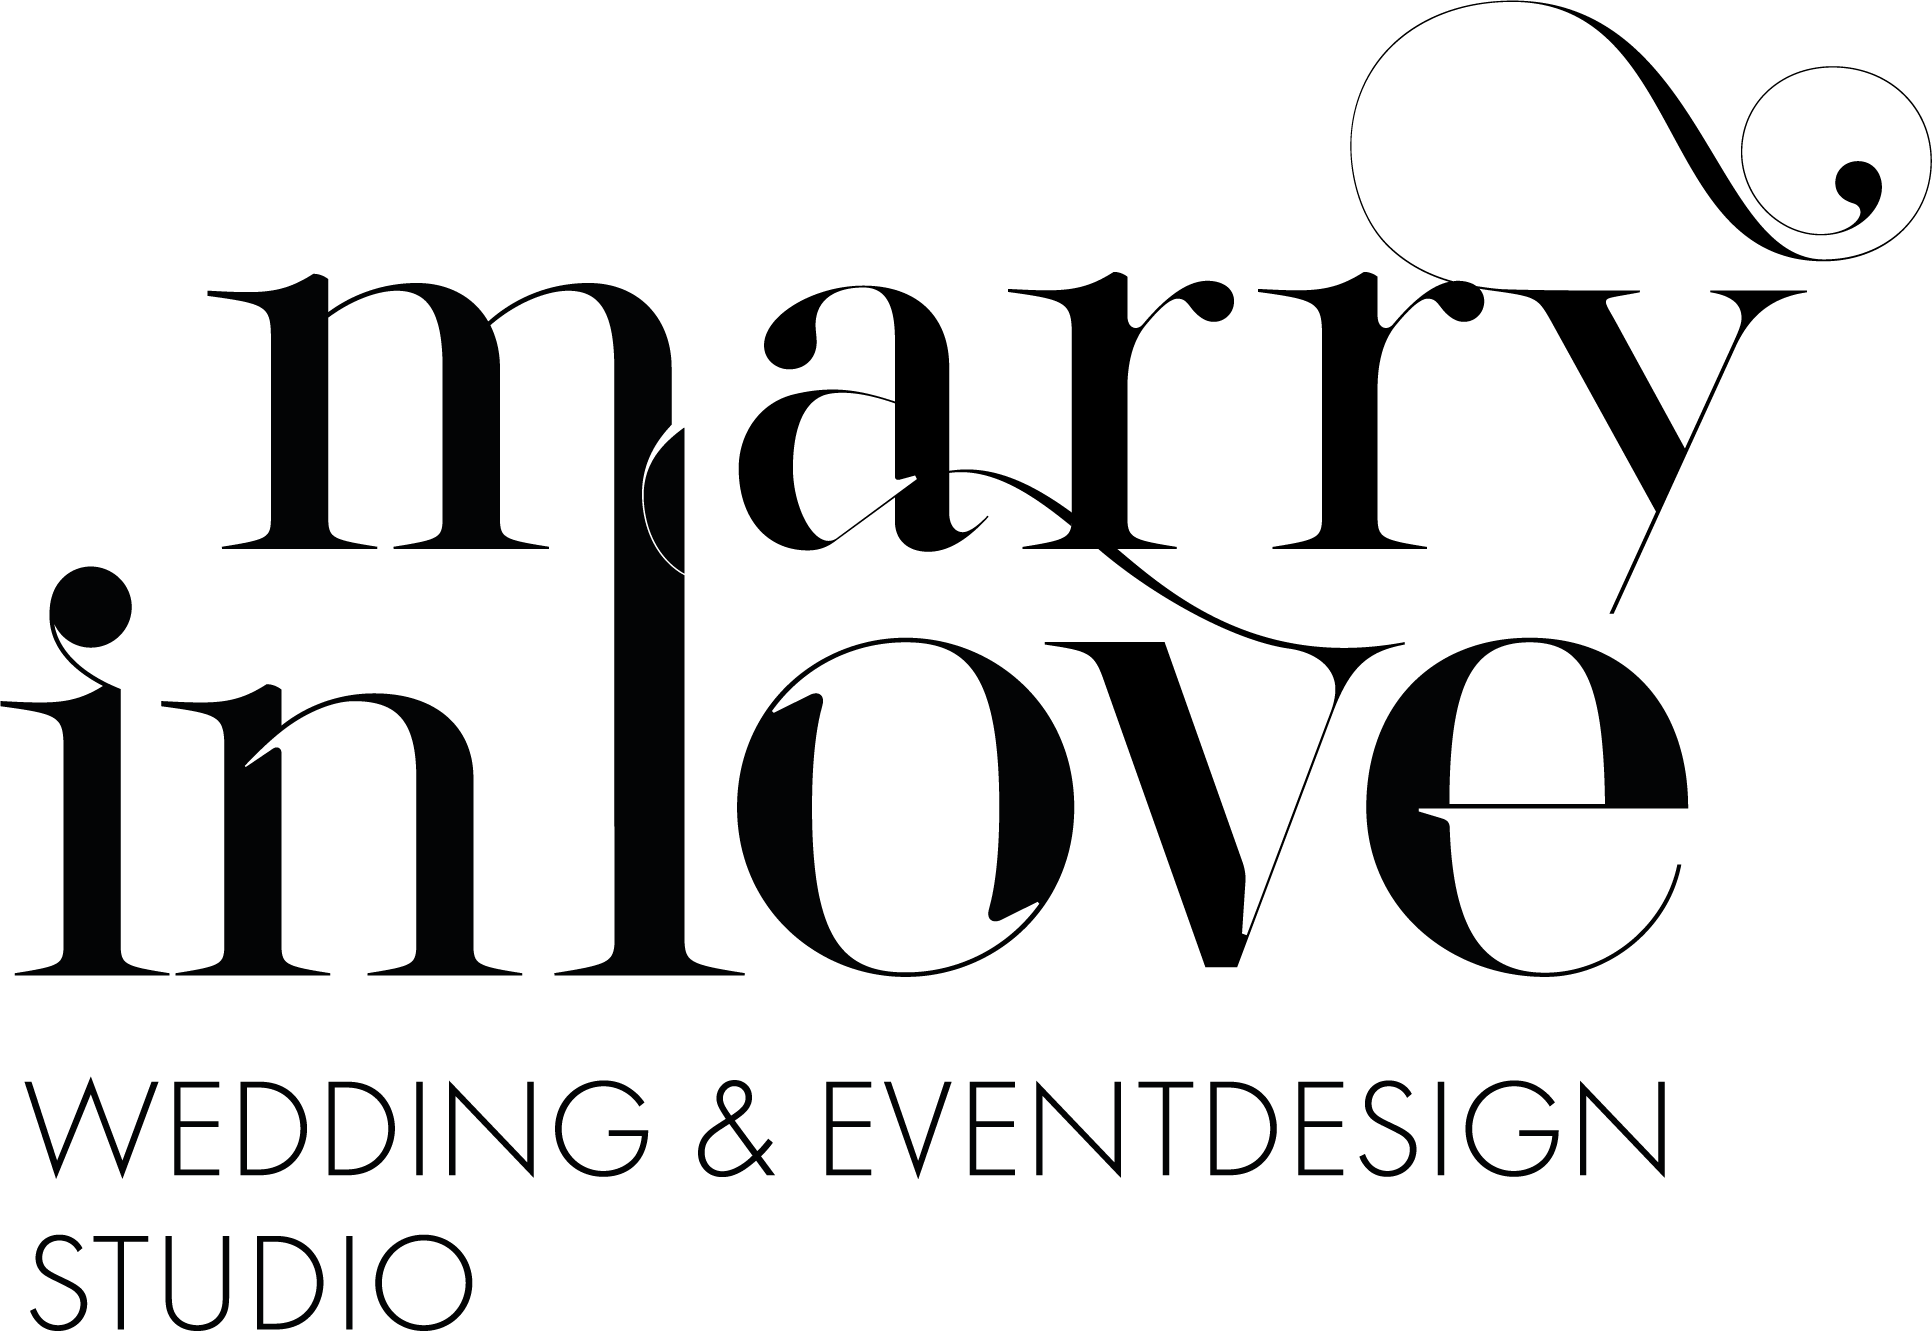 MarryinLove Weddingsdesign